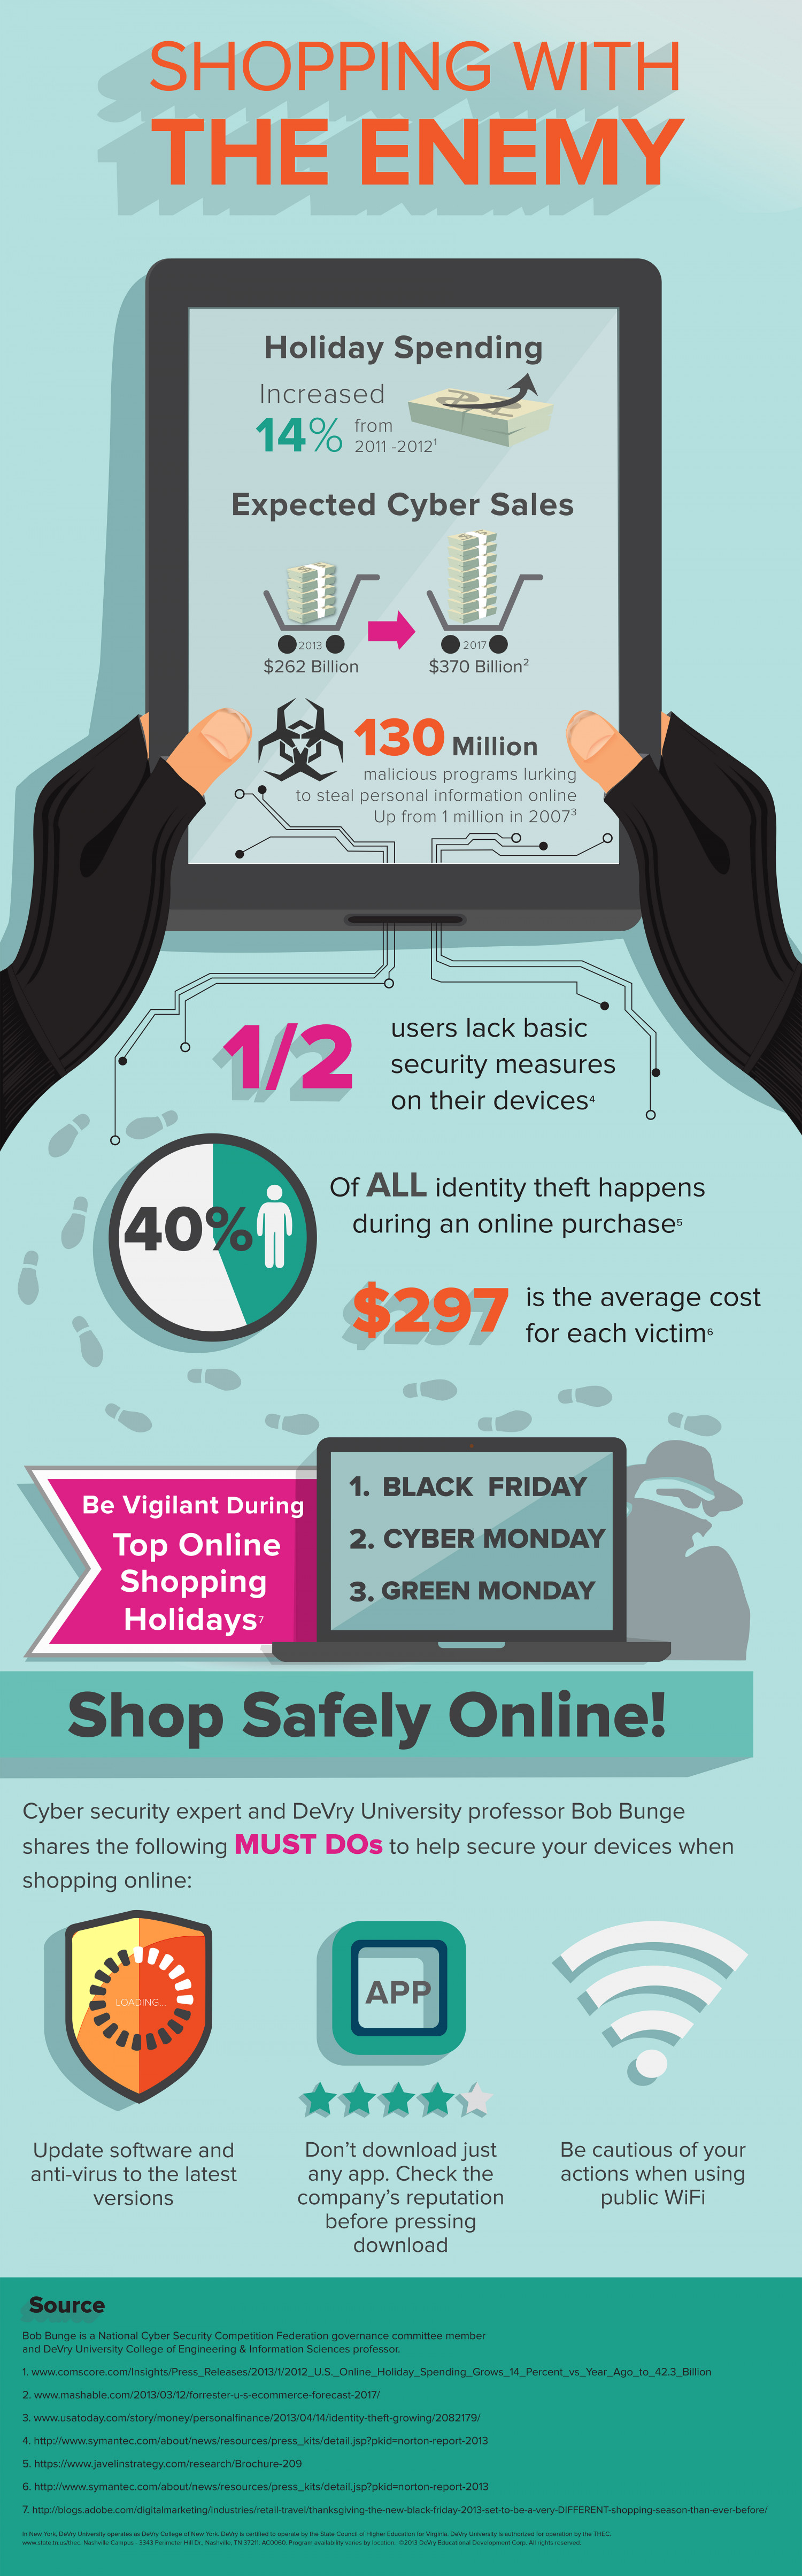 Shopping with the Enemy: Online Shopping Safety Infographic